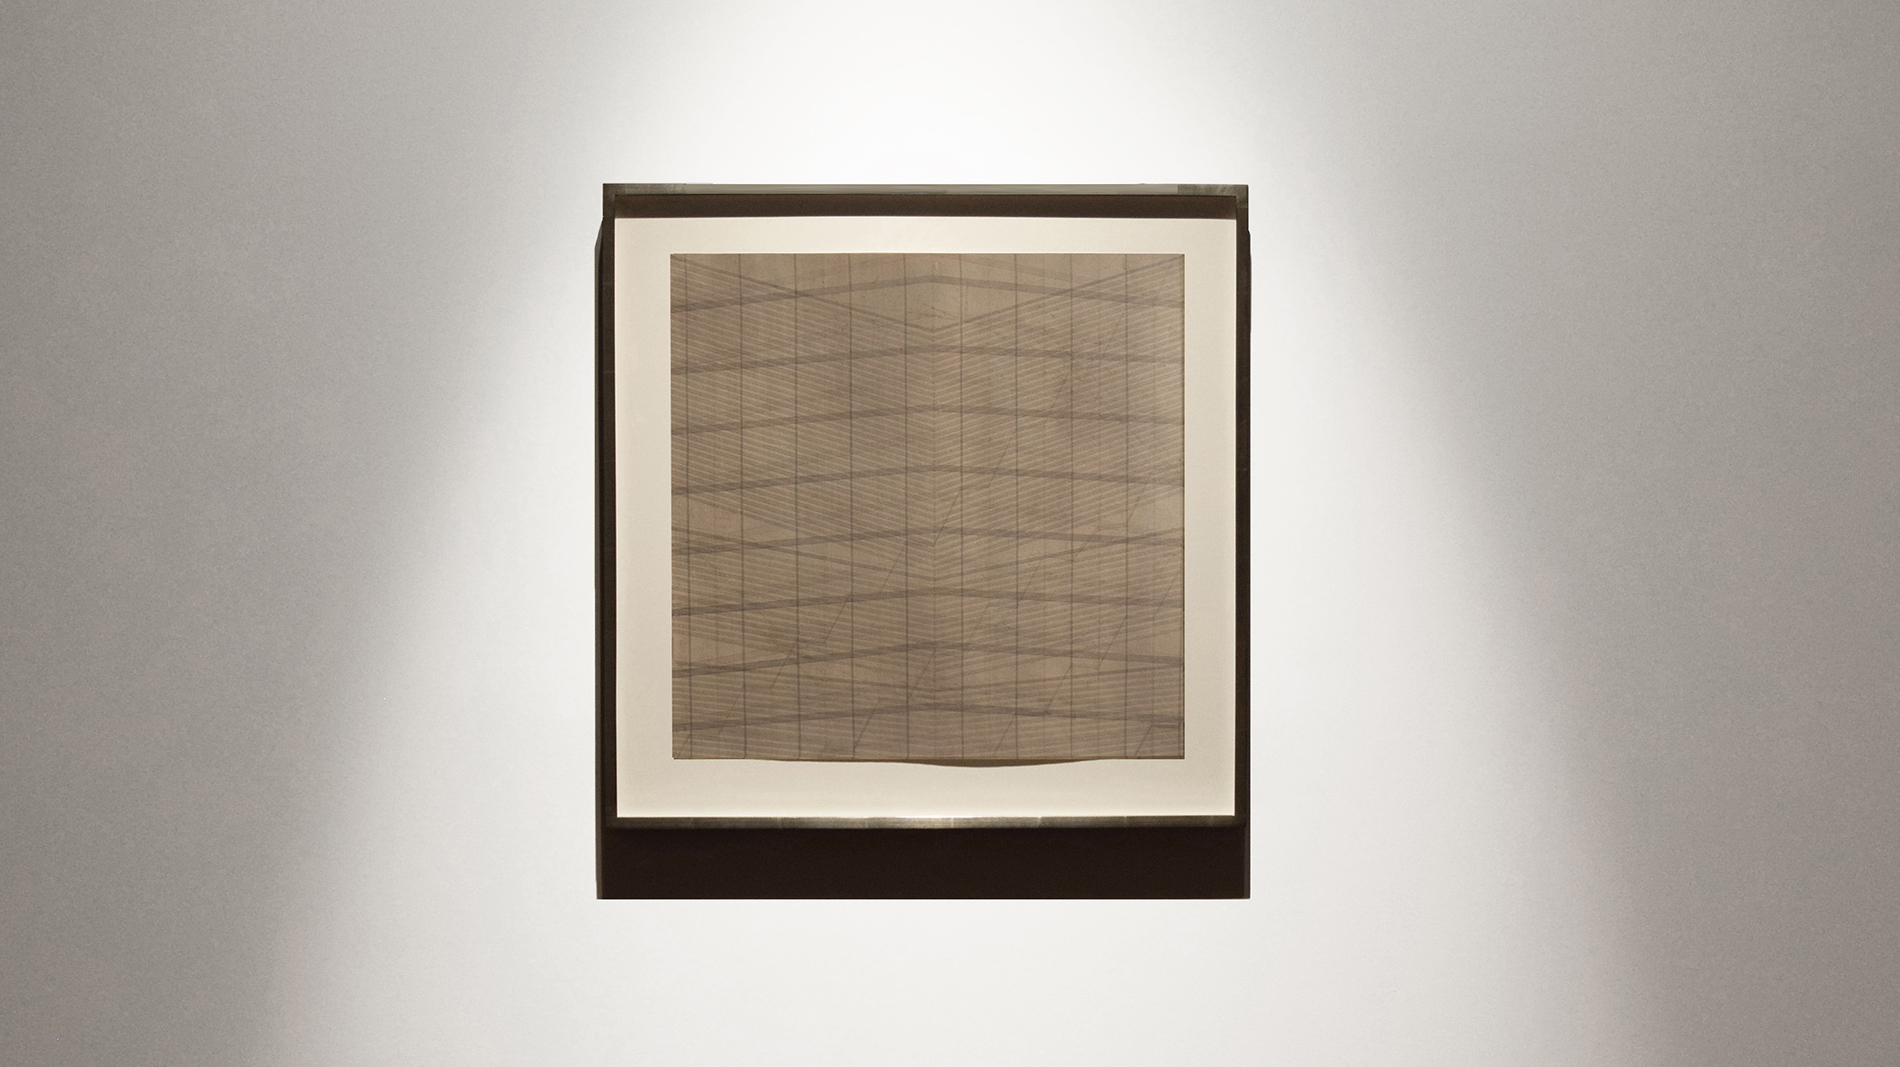 Nasreen Mohamedi - A life in So(u)litude Her work is about that elemental approach to life, earth, art - the infinitesimal quality of time, sound, and space.